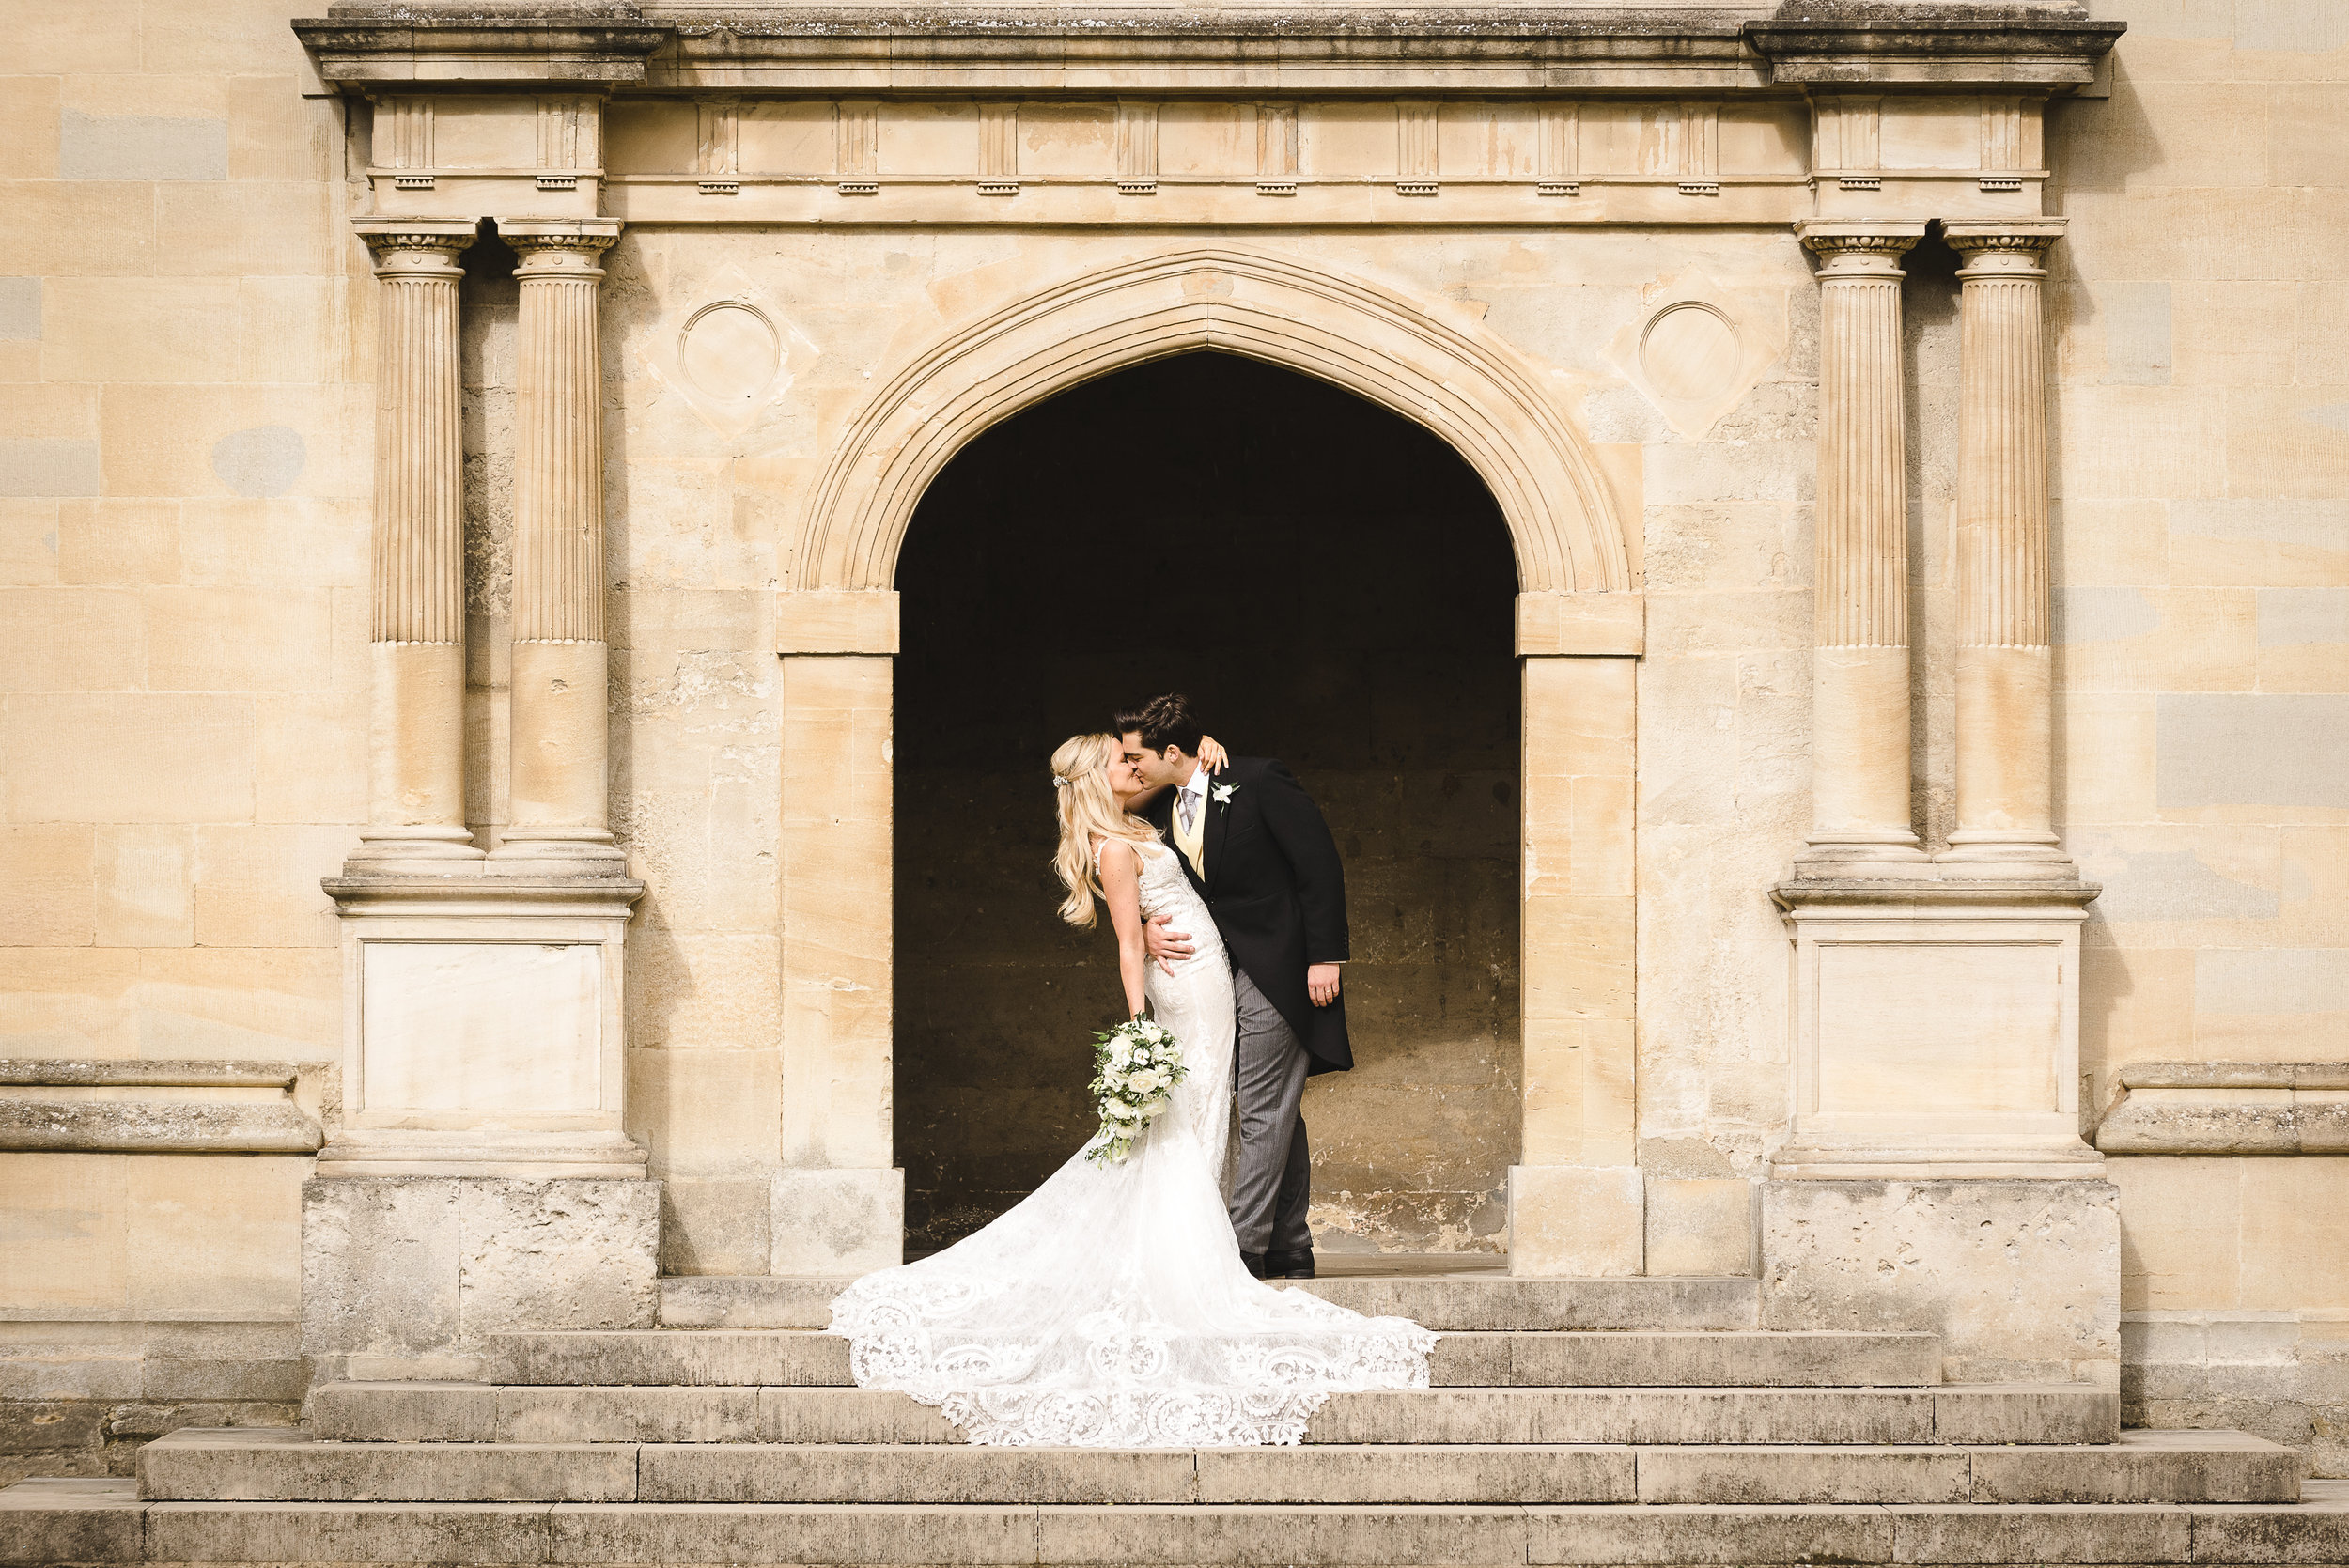 Lauren and CharlyBodleian Library, Oxford, June 2019 - Images by Weddings by Nicola and Glen